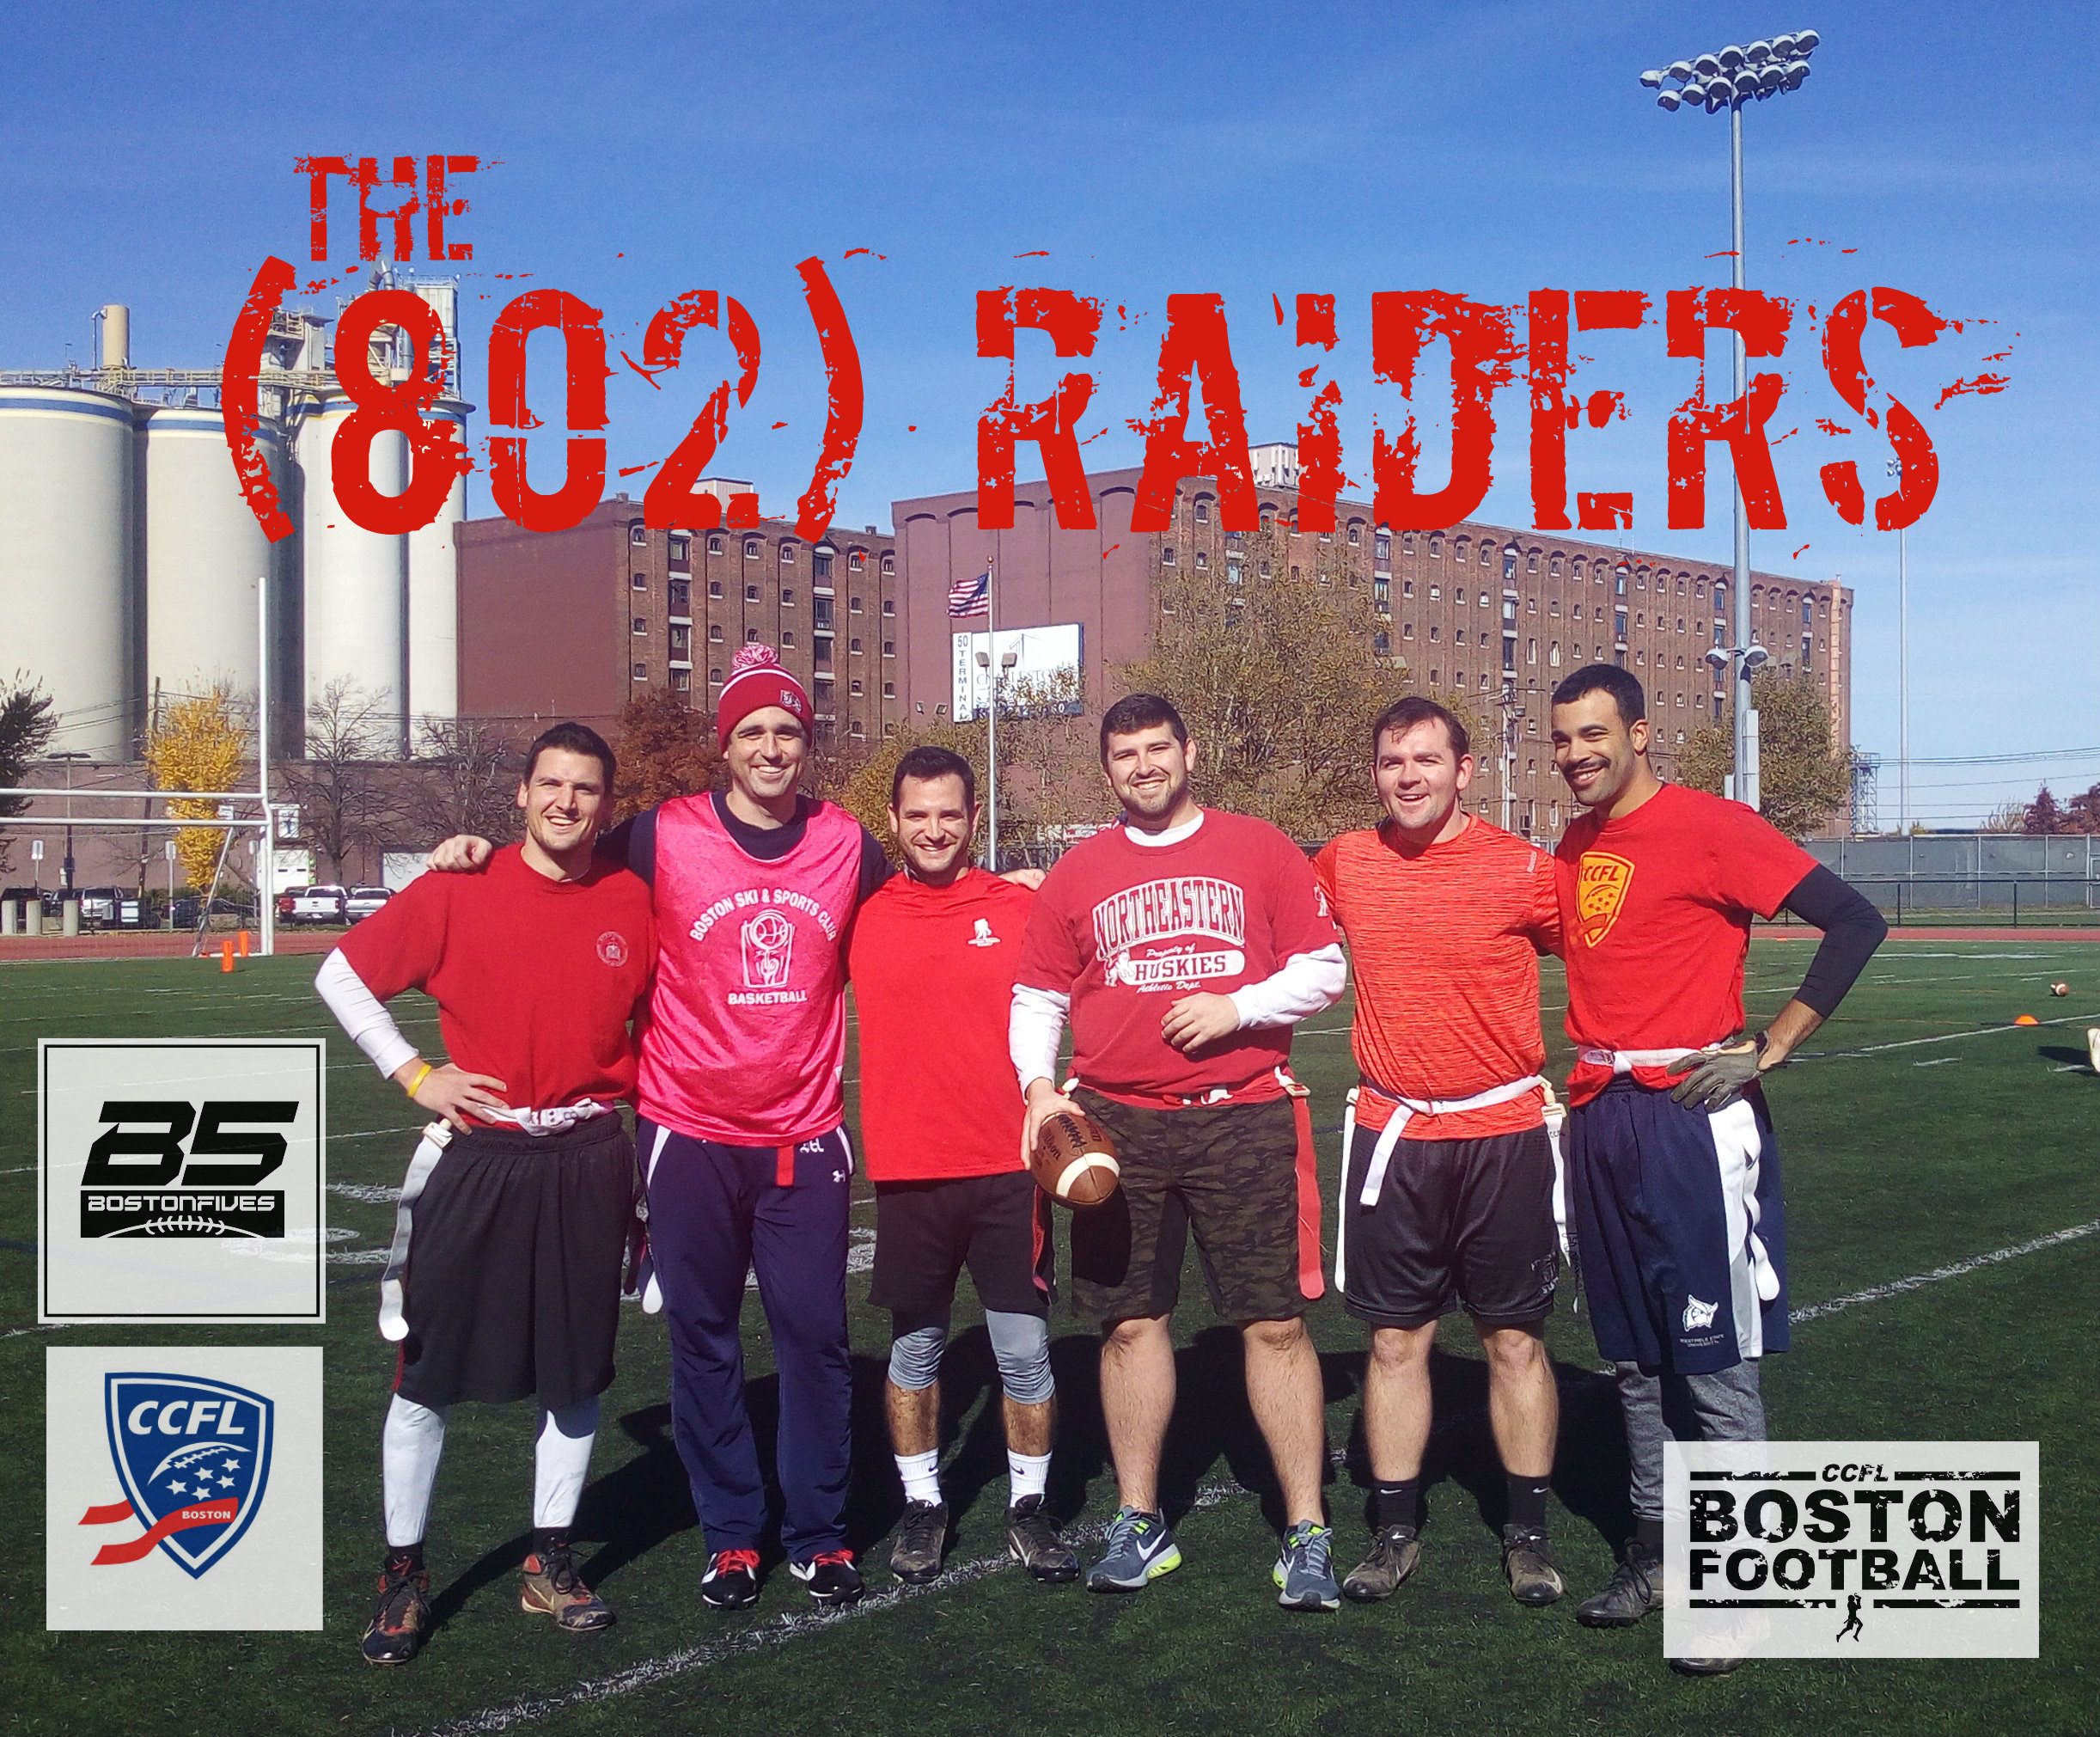 THE (802) RAIDERS